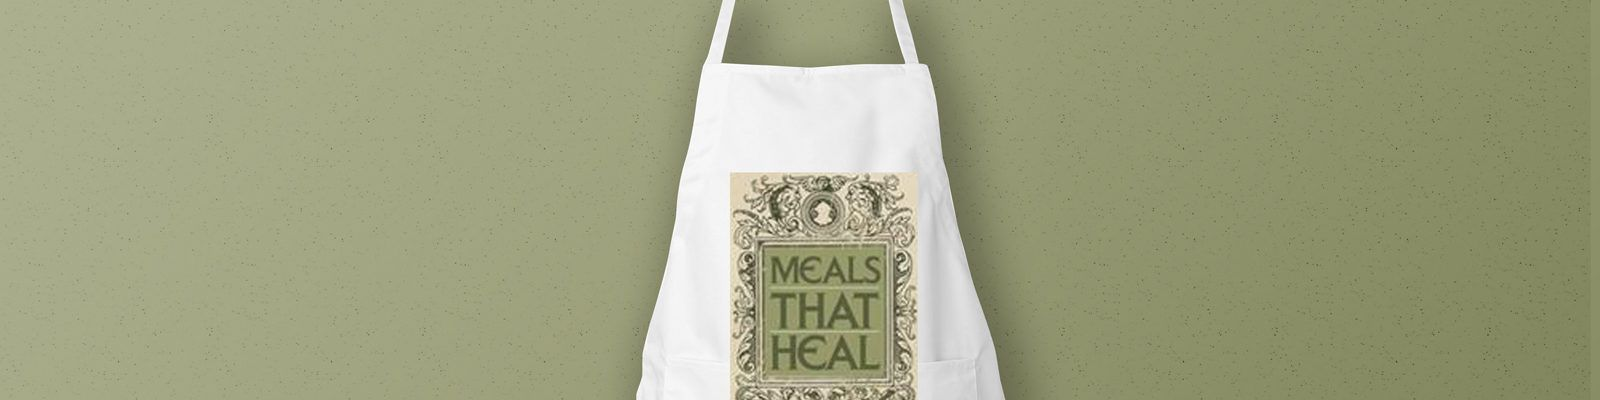 Personalised Printed Eco-Friendly Aprons for 'Meals That Heal' - Header Image